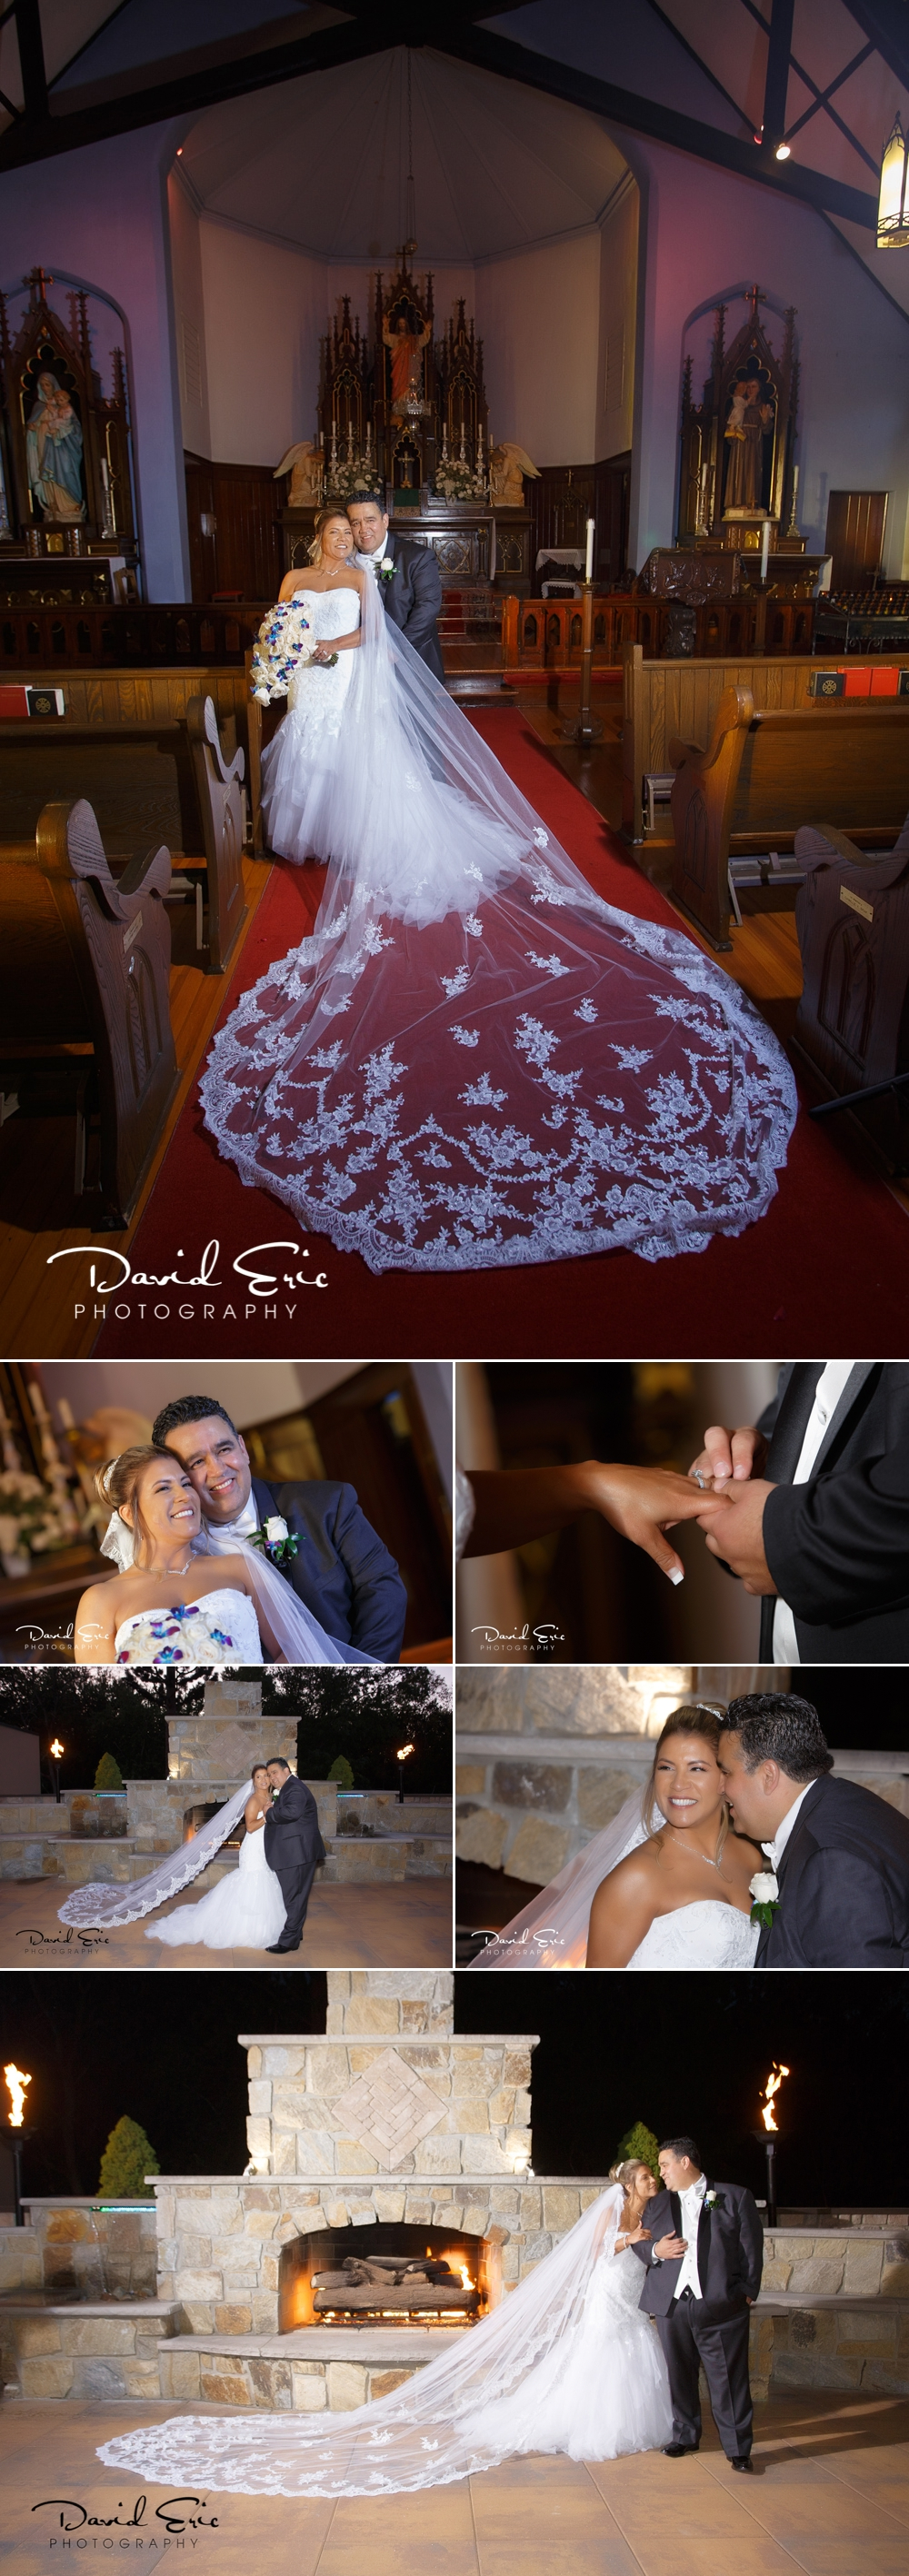 Always make sure you take the time to get portraits with the bride and groom! These are images they will cherish for many years to come.